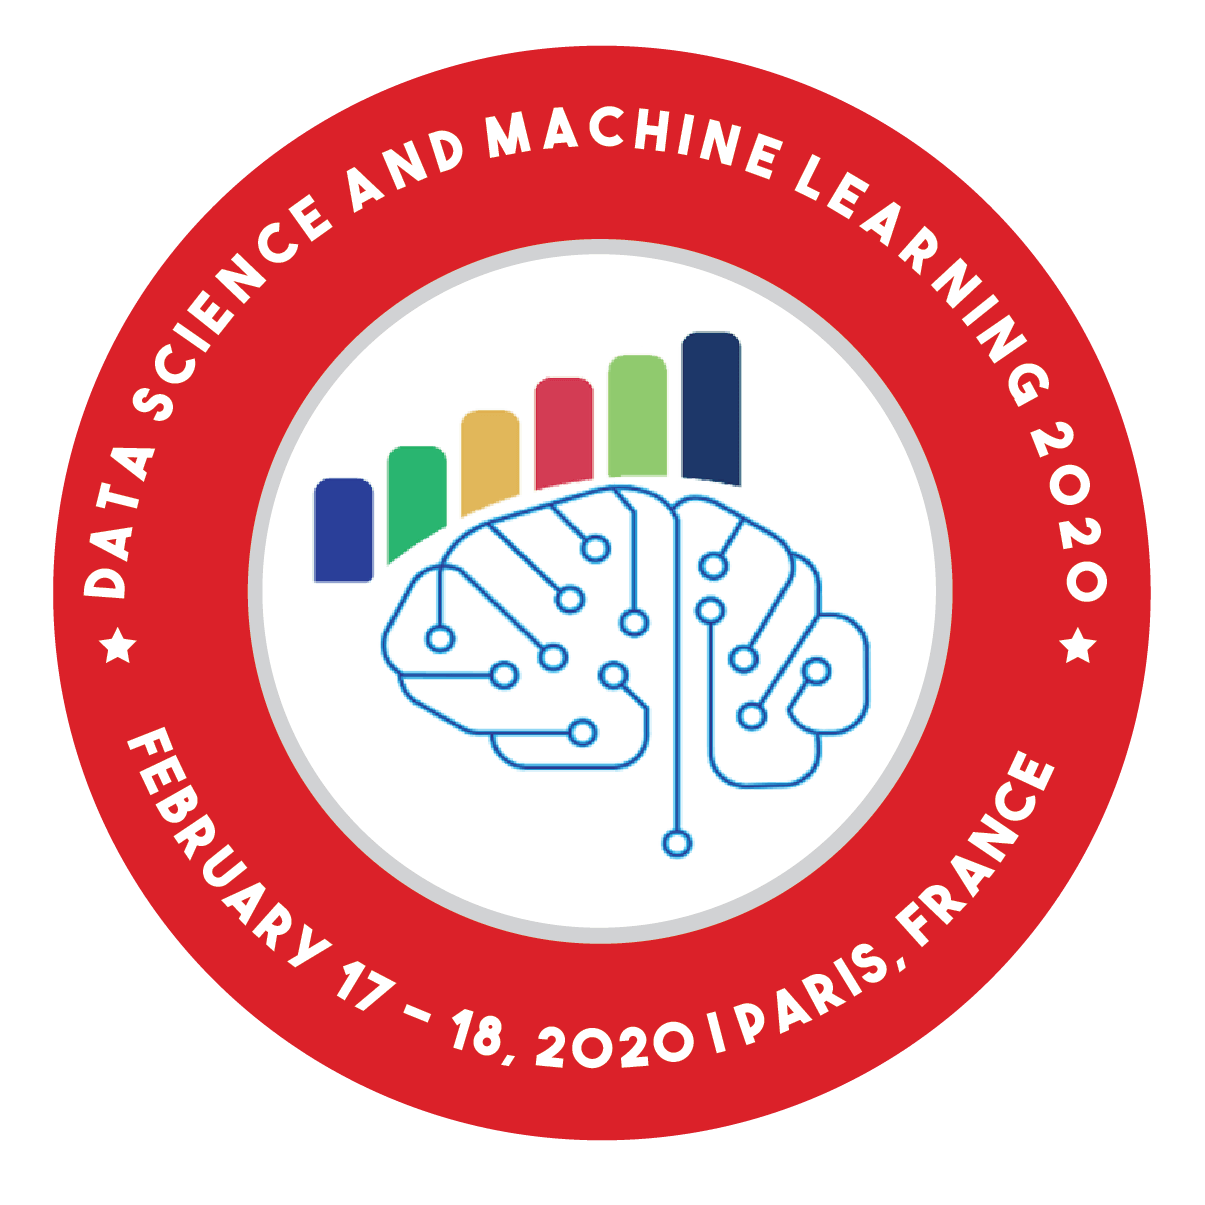 International Conference on Data Science and Machine Learning